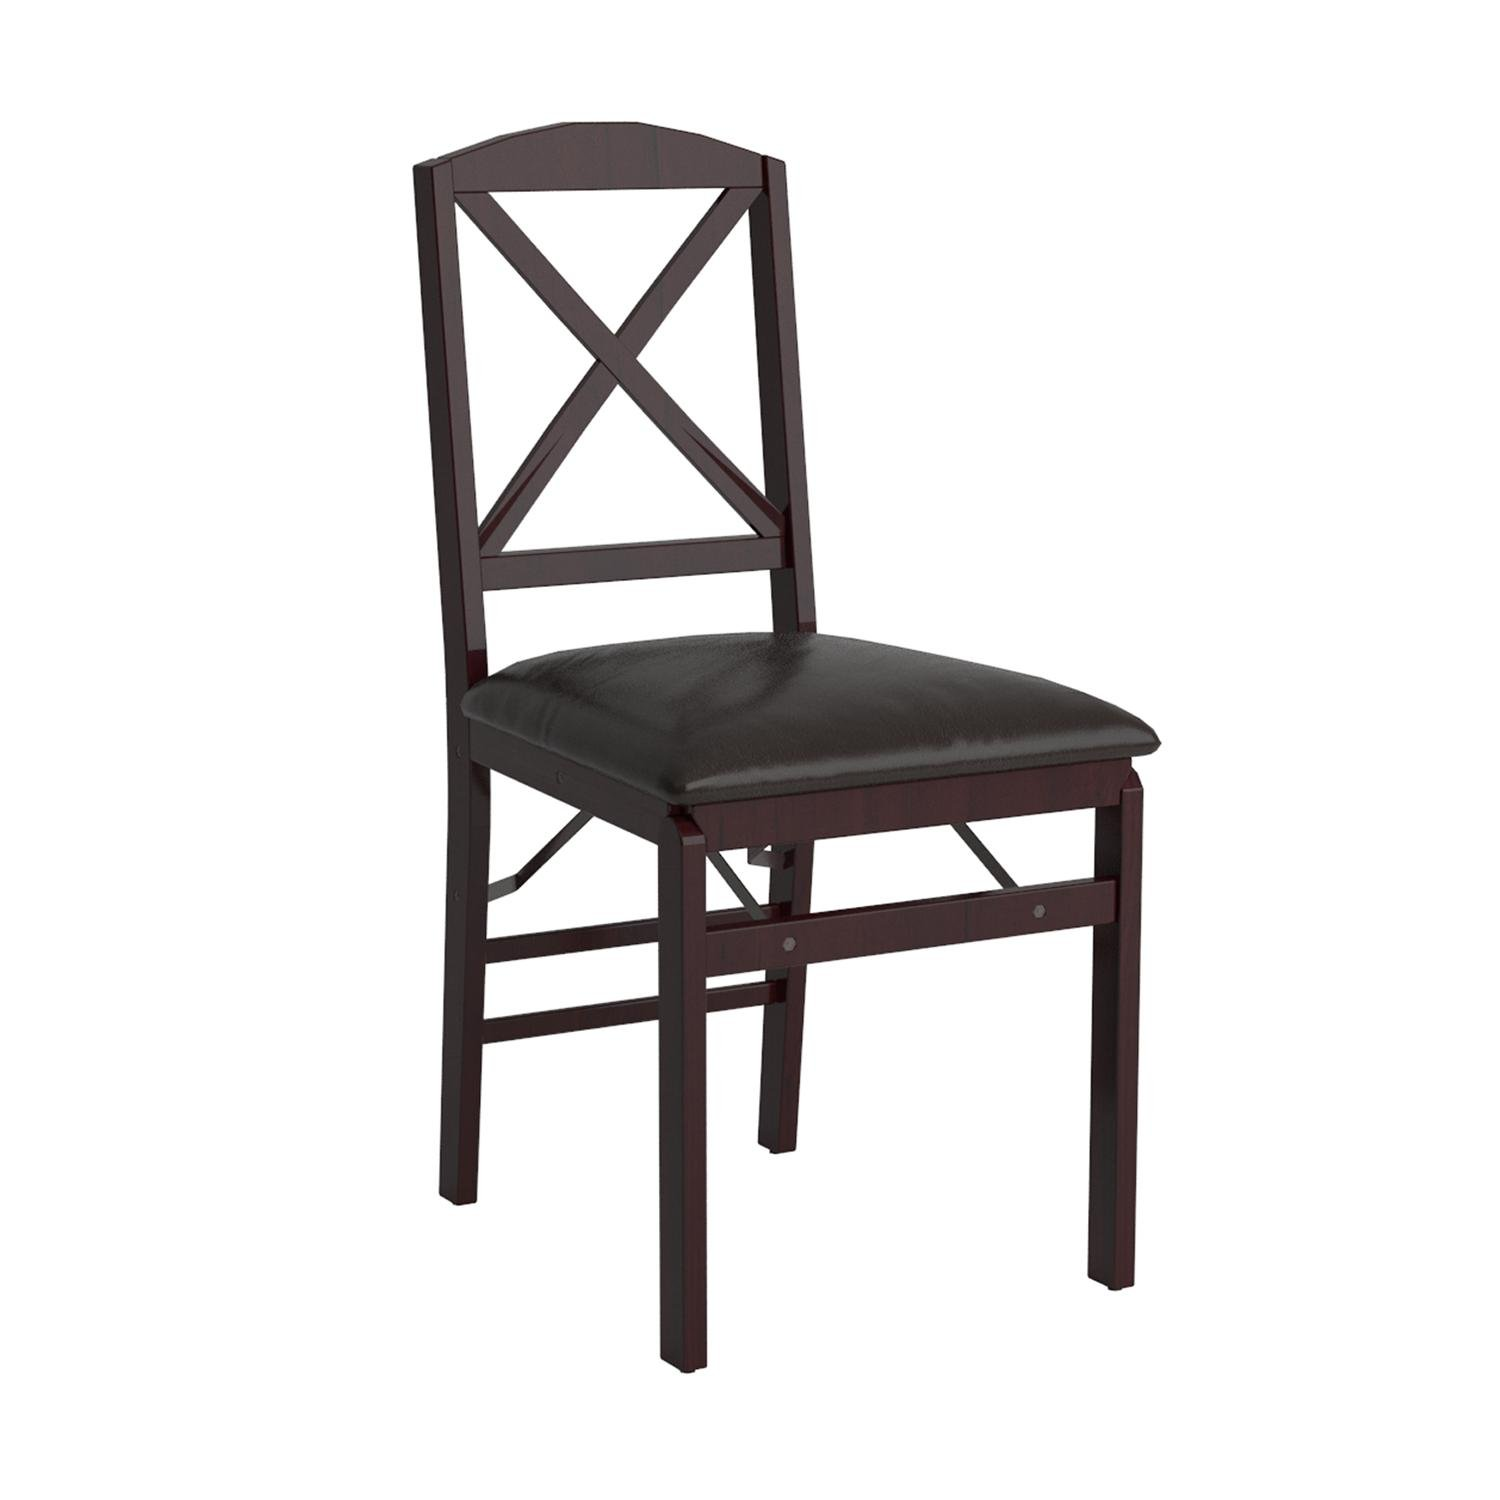 Cosco Espresso Wood Folding Chair with vinyl seat &  X-Back (2-pack) by Cosco